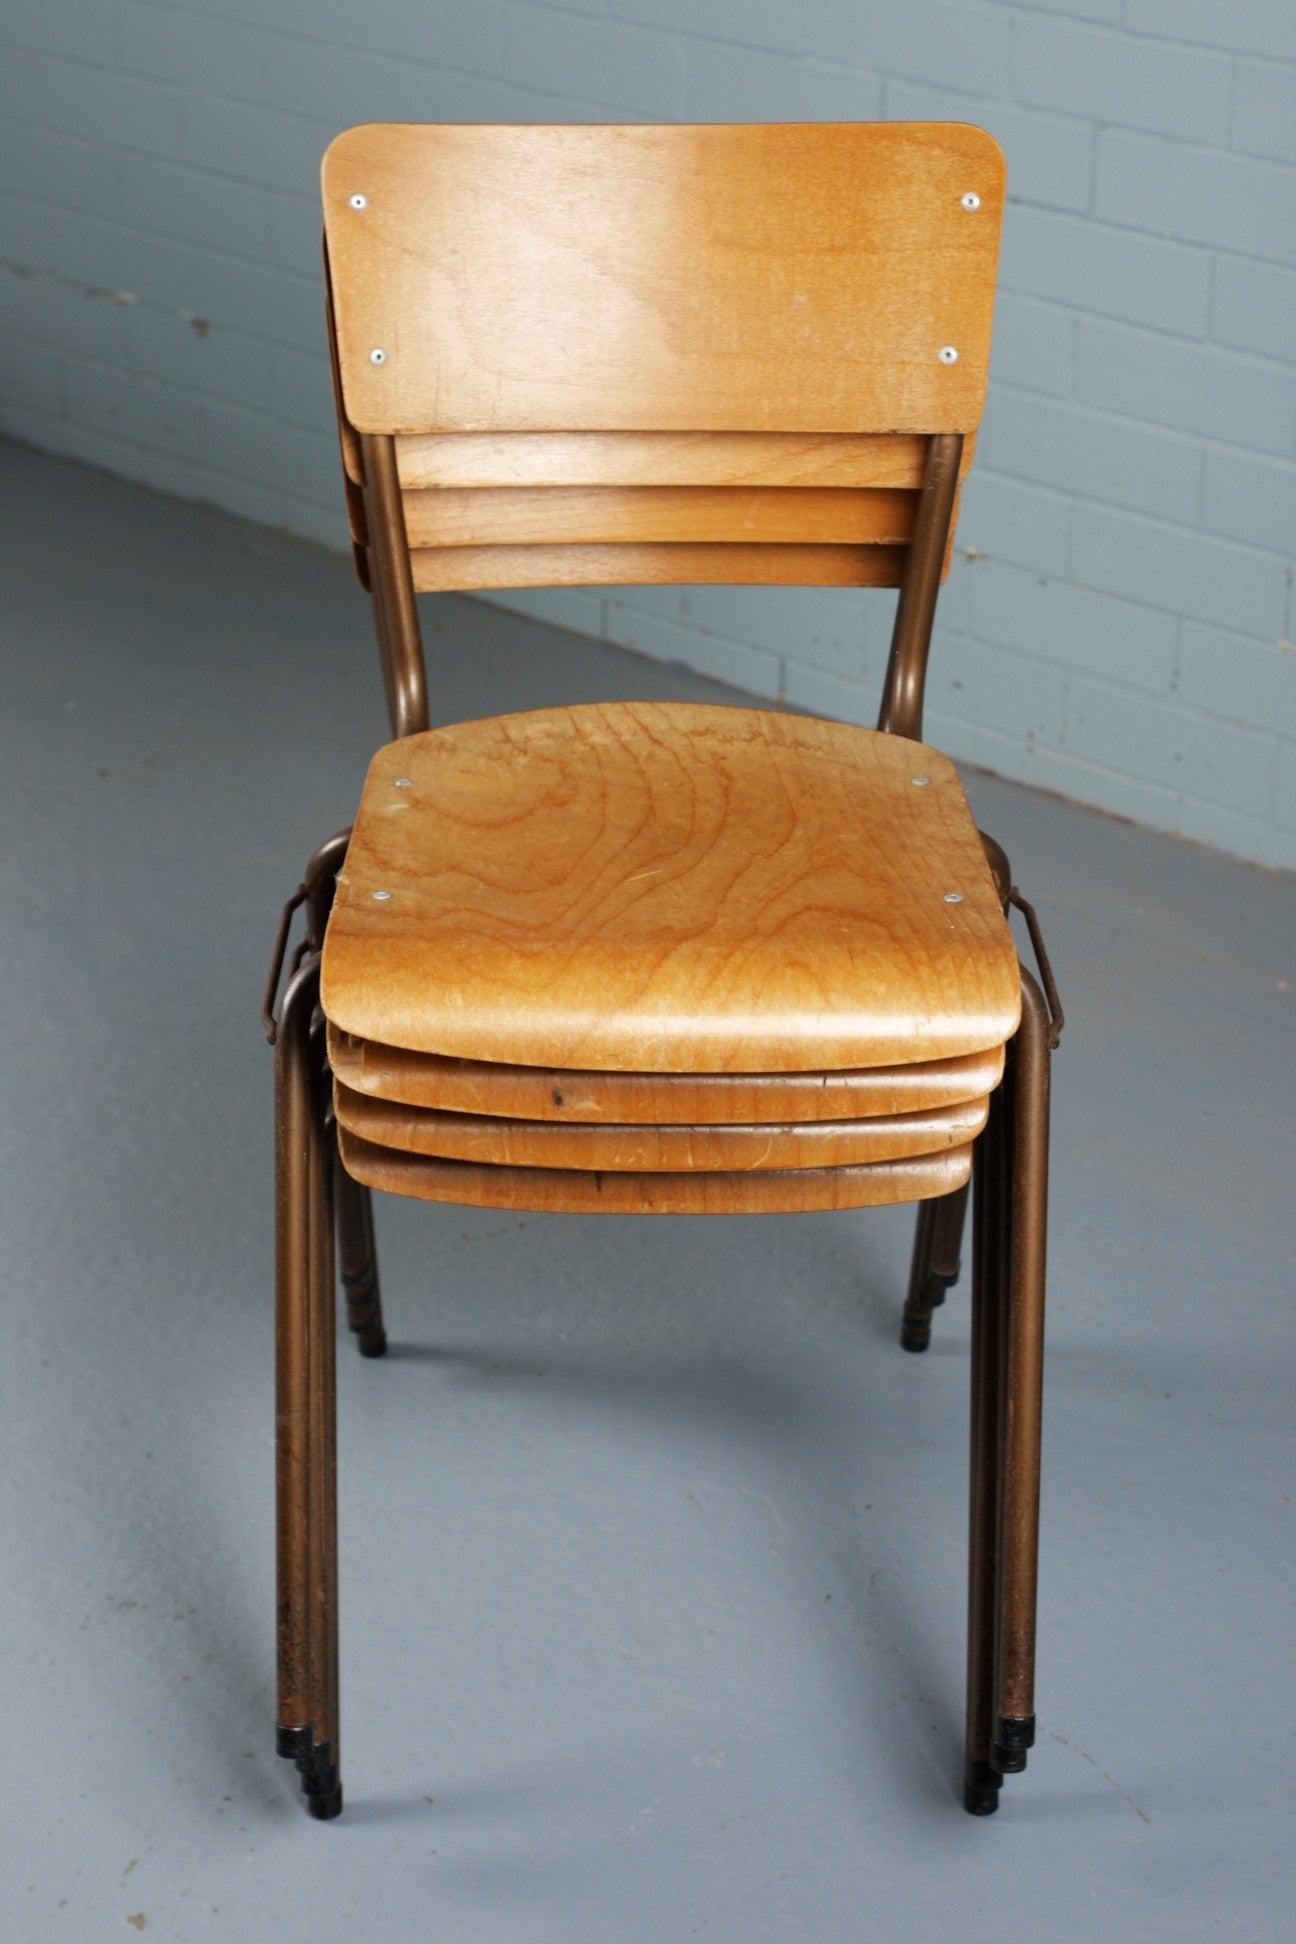 Tubular steel stacking chairs with bent plywood seat and back rest for sale at Industrious Interiors, an online vintage furniture and homeware store based in Nottingham, England.